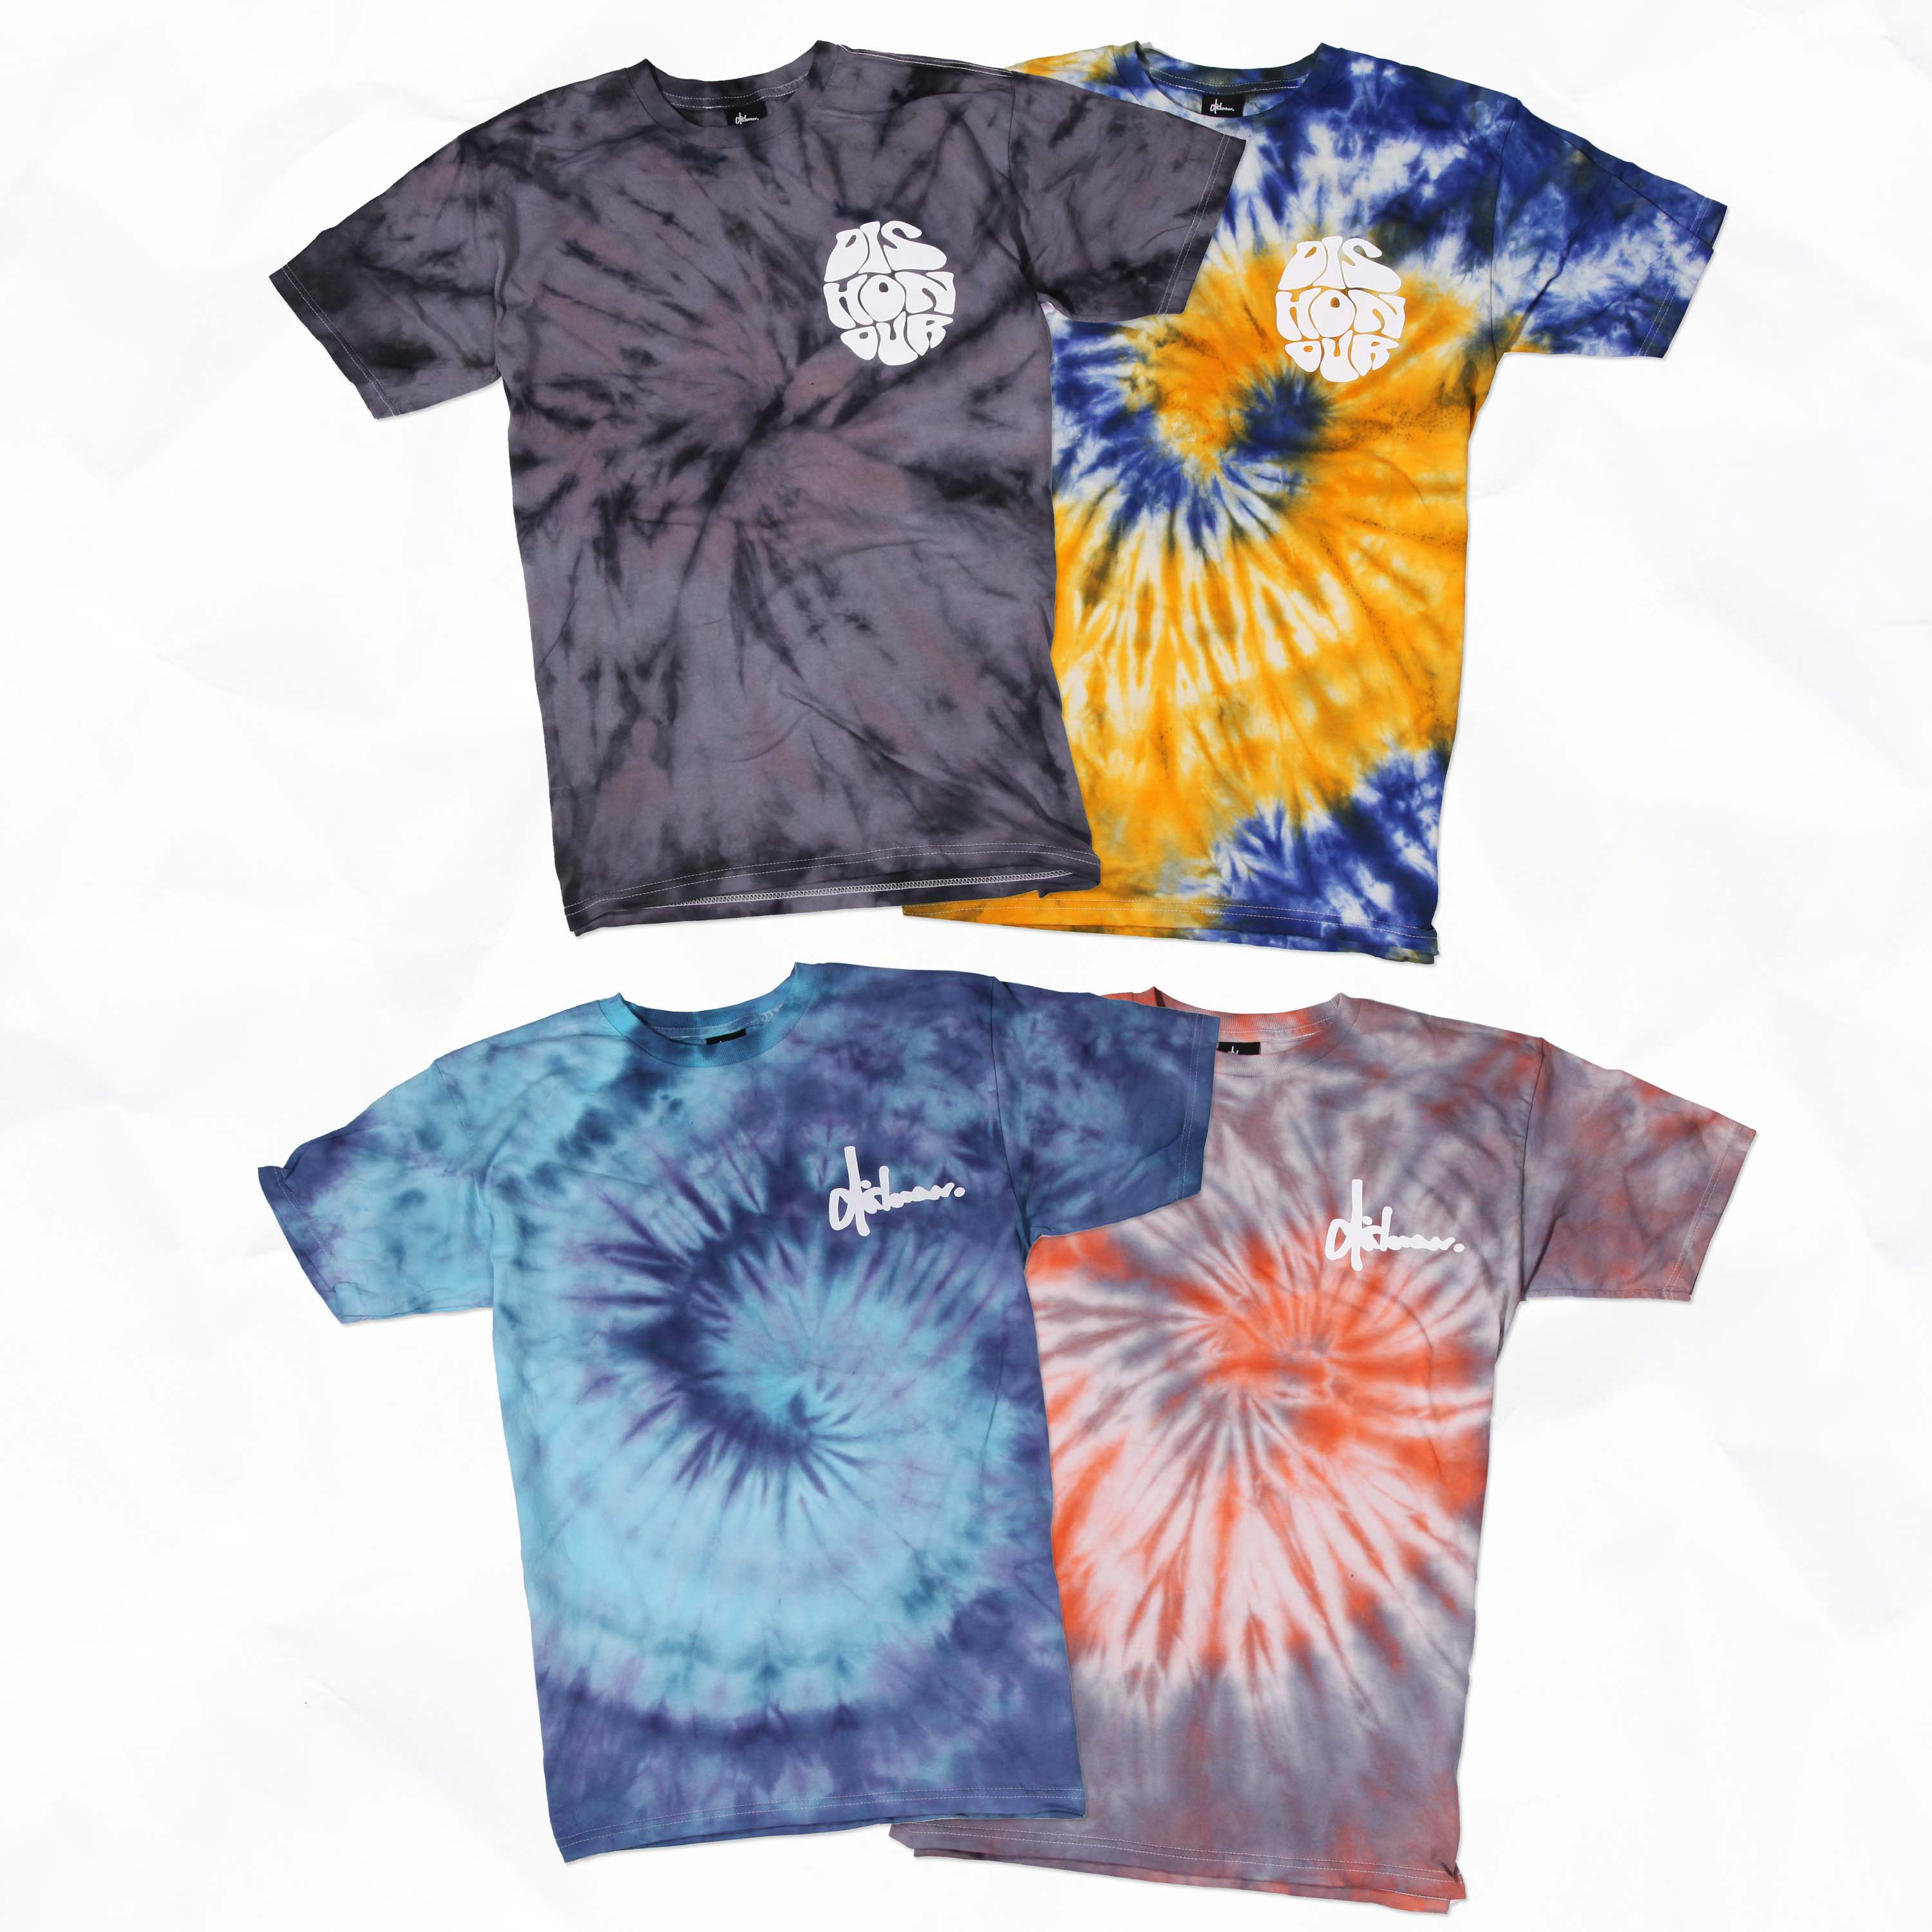 Dishonour Brand - New Dishonour Cali & Nomad Tie Dye Tees OUT NOW